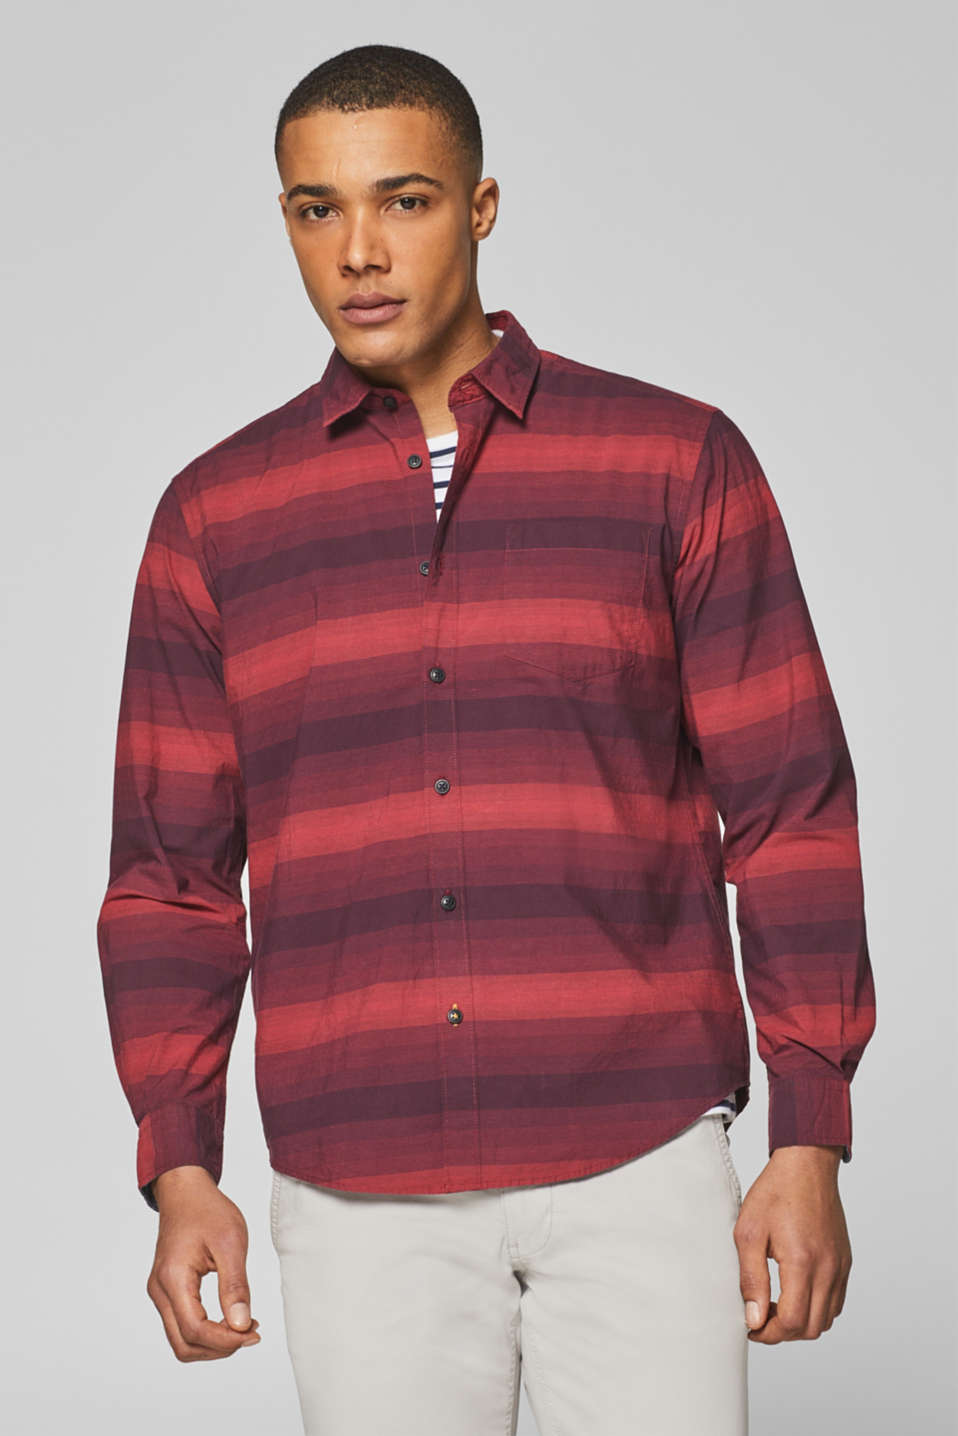 Esprit - Striped shirt, 100% cotton